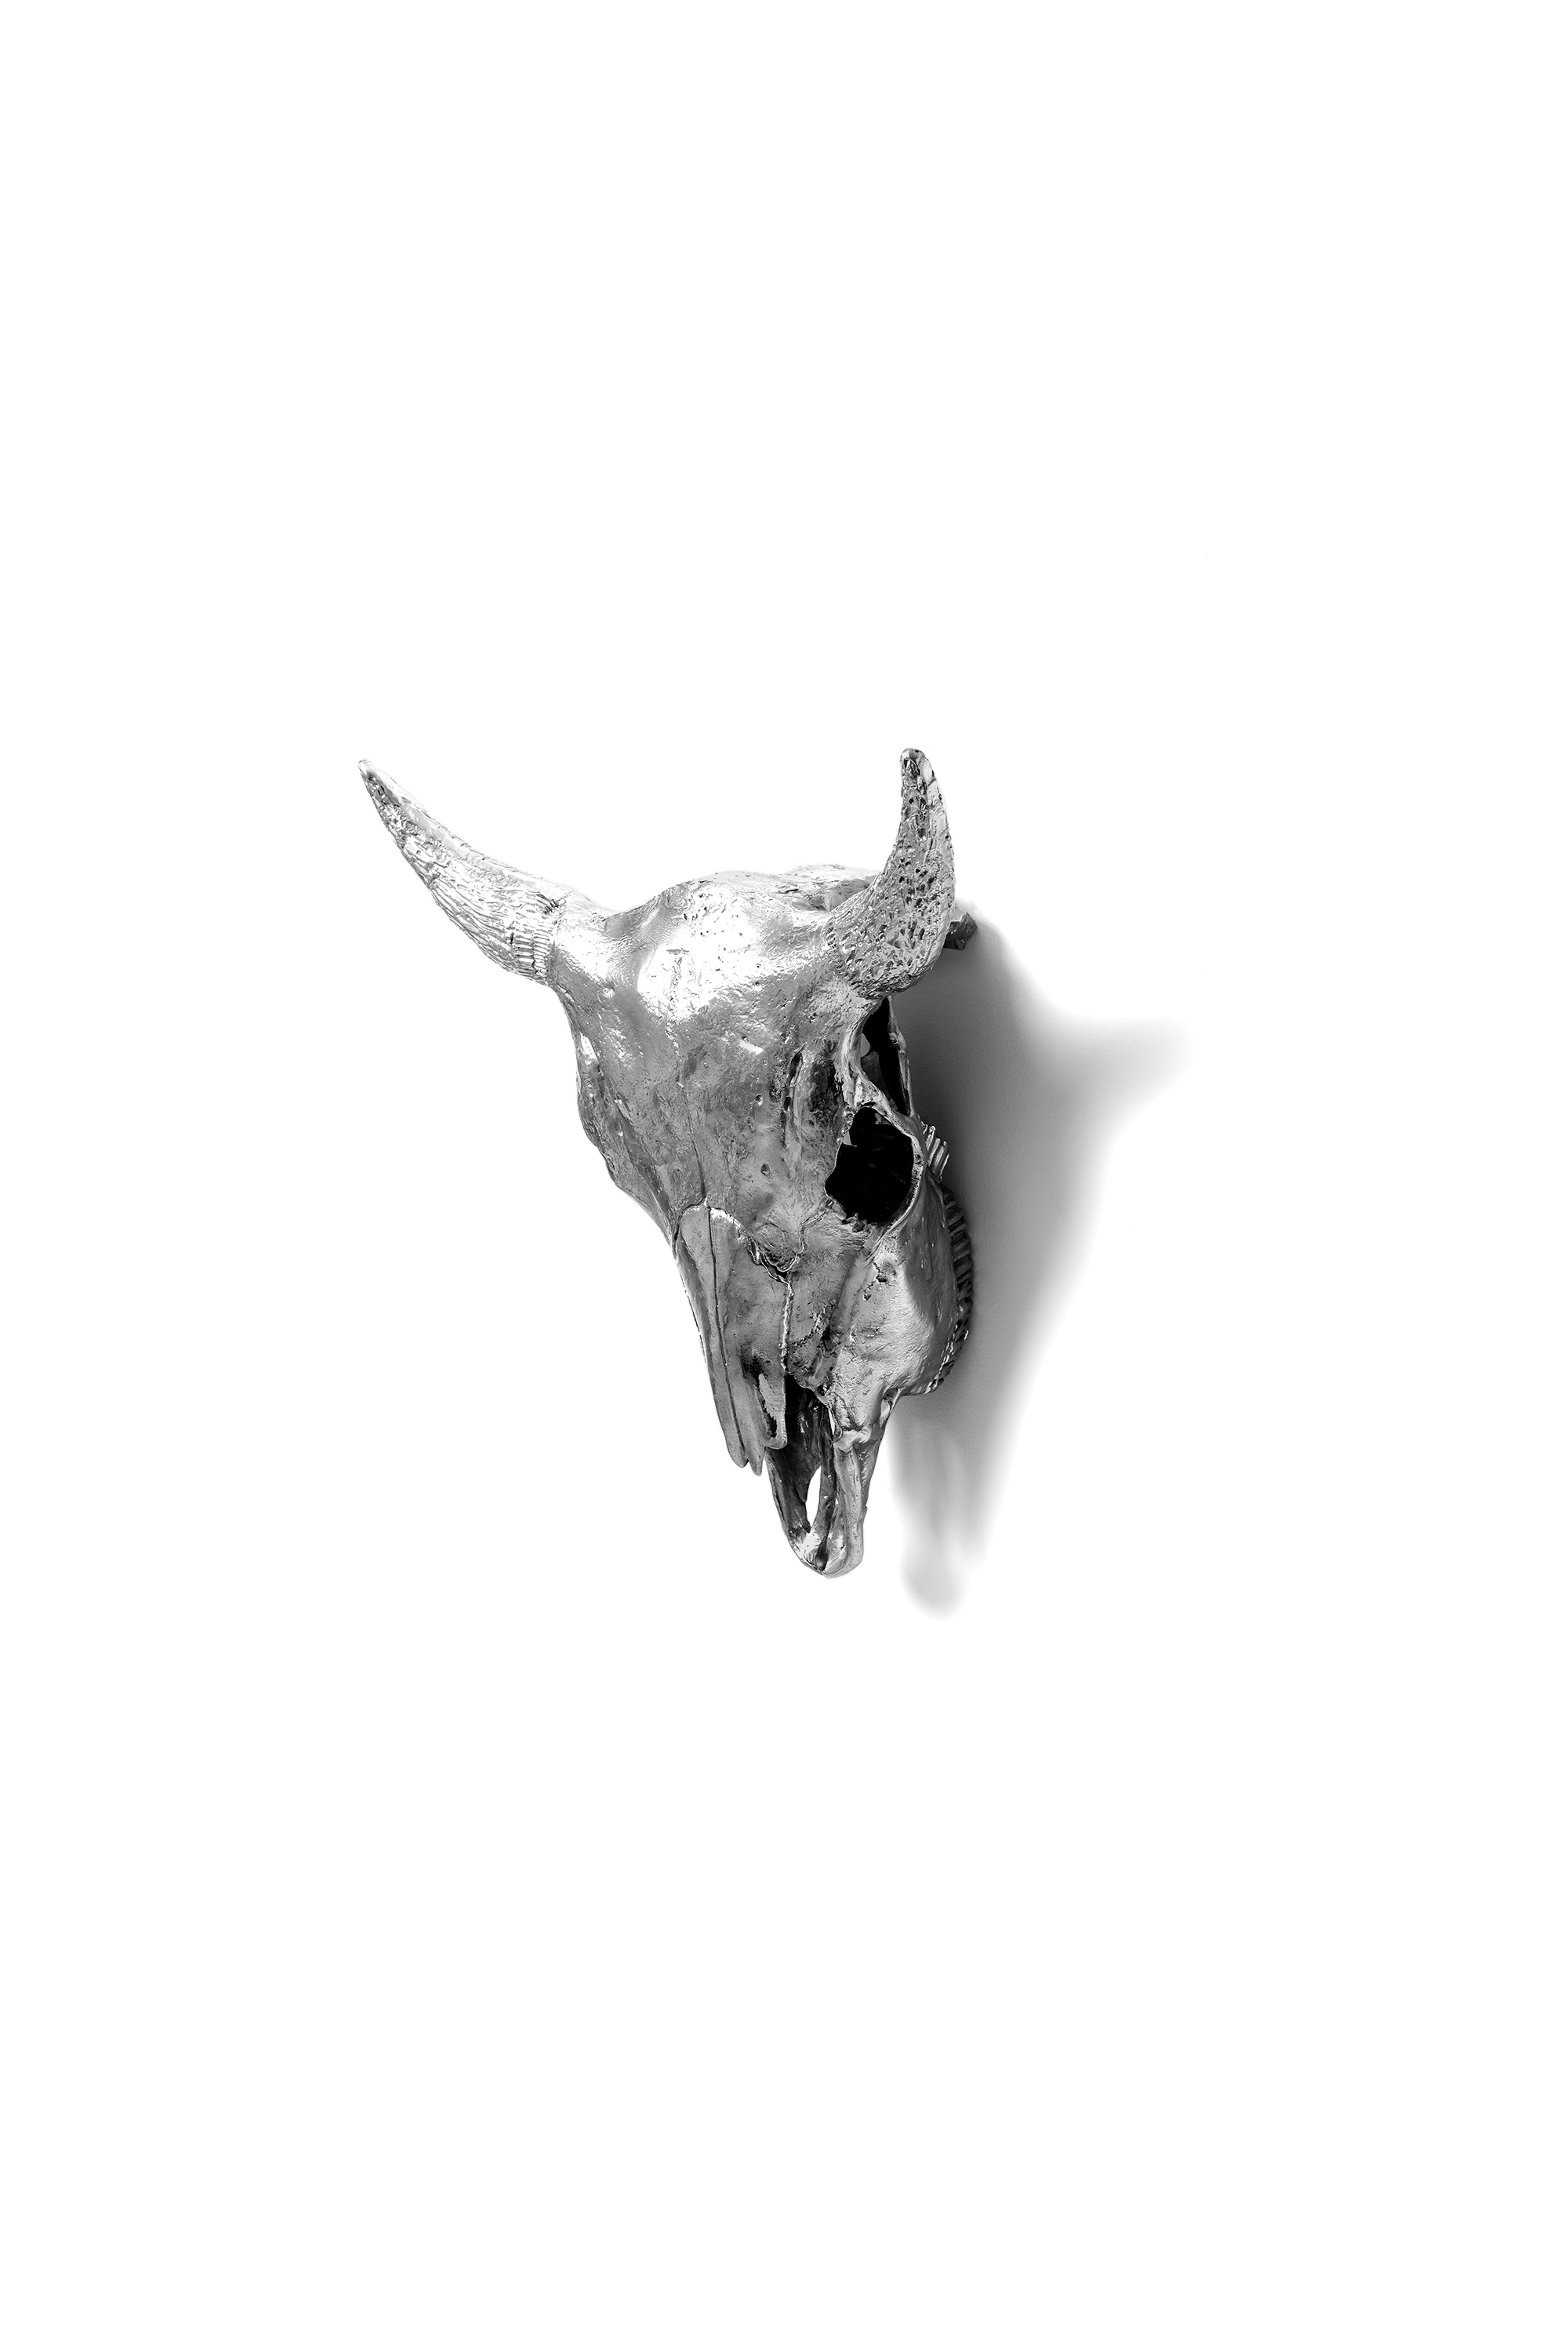 Diesel - 10899 WUNDERKAMMER,  - Home Accessories - Image 4